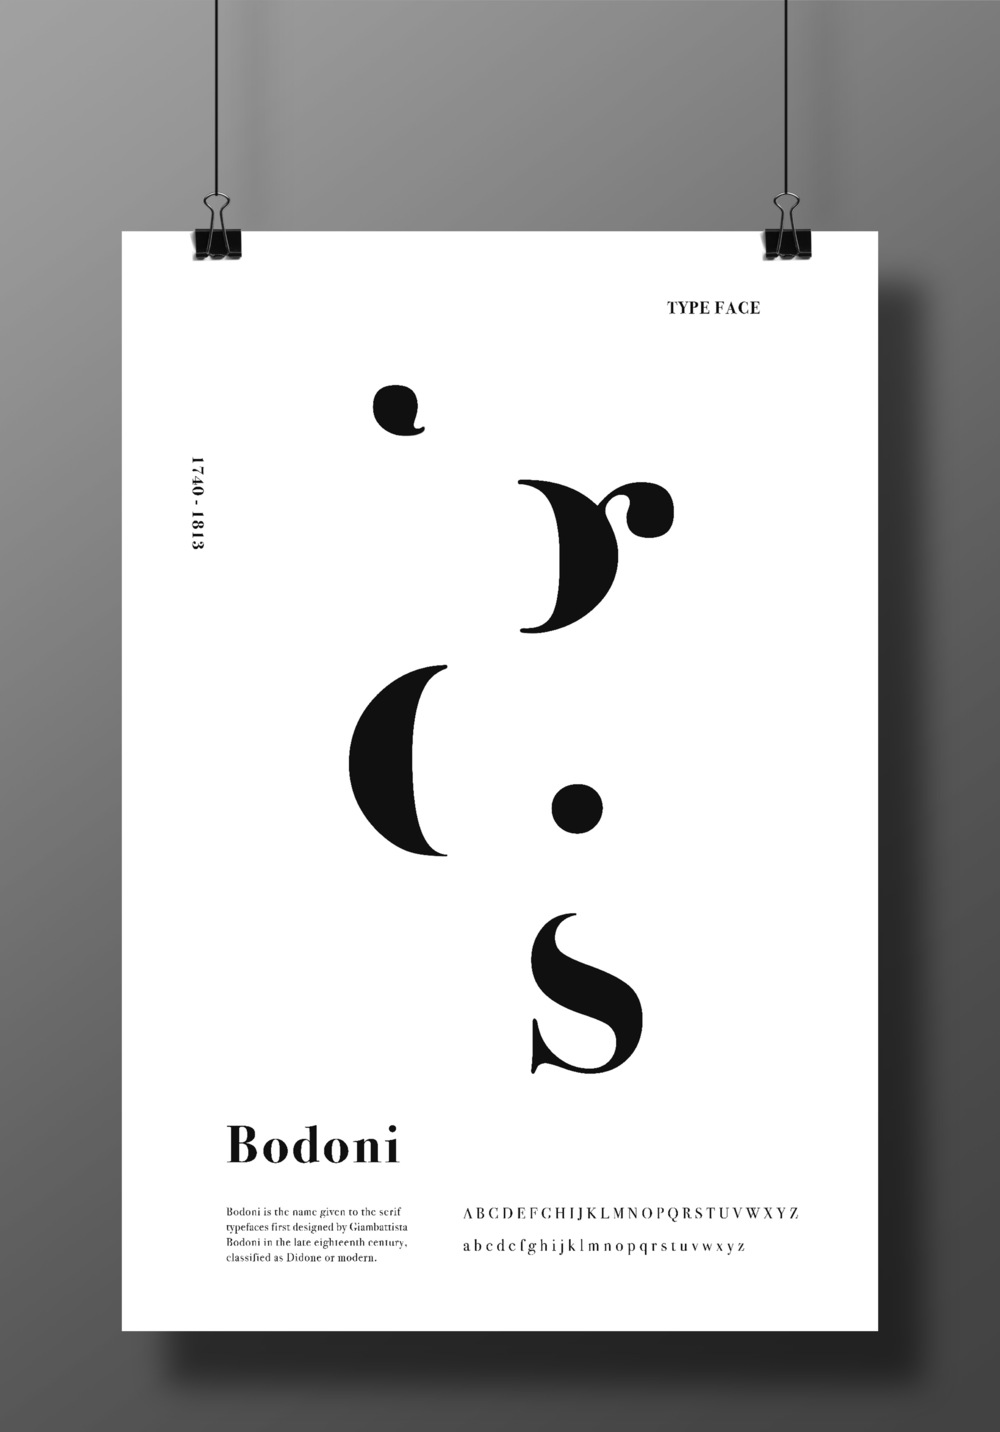 The Art of Bodoni  The Bodoni typeface was made for communication but also made to be appreciated as a work of art. The typeface is known for its elegance and simplicity. This new introduction of a clear and simple type during that time period was mostcommonly used in headings and display usage. This poster emphasizes the elegance of the typeface, to be viewed as a piece of art. The enlarged part of types of Bodoni highlights the sophisticated curves and the beautiful negative space it creates.